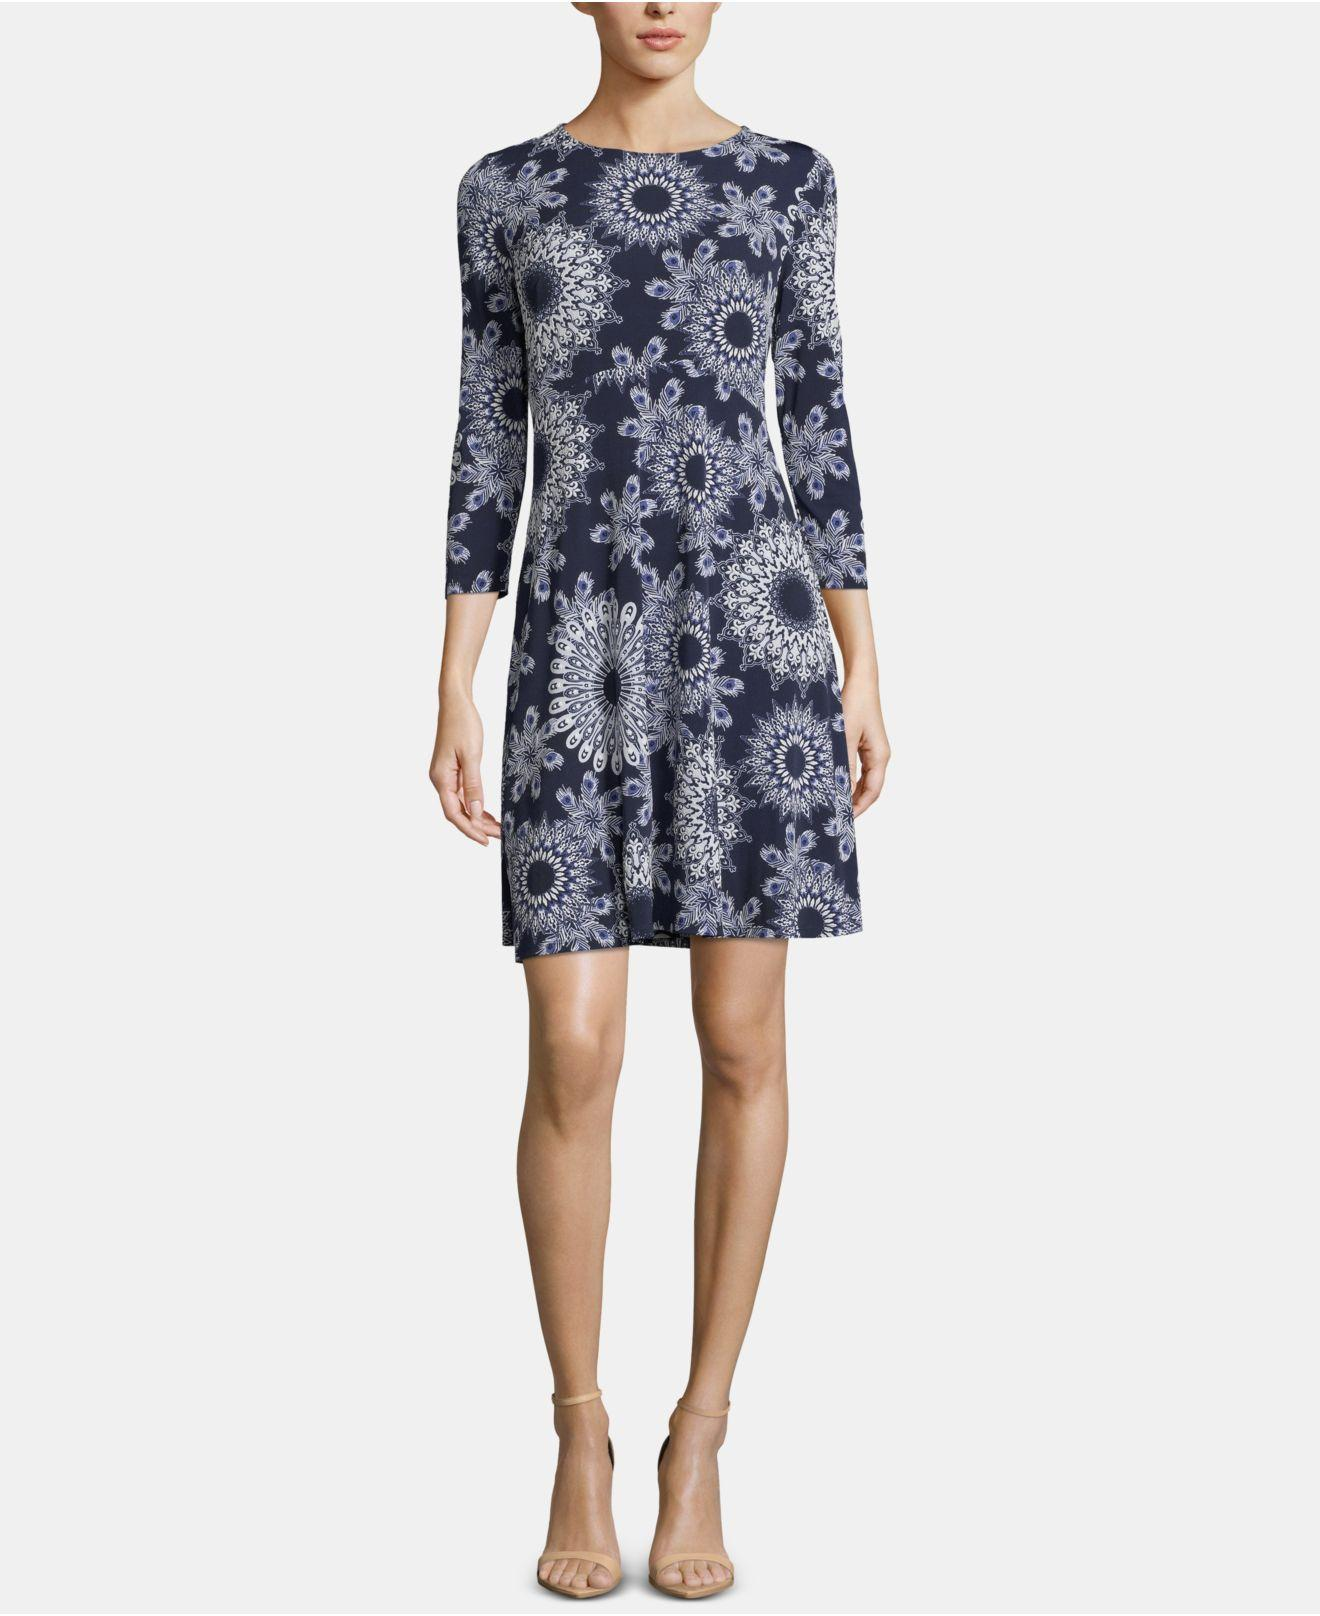 22a67e2df0 Lyst - Eci Pull-on Printed Dress in Blue